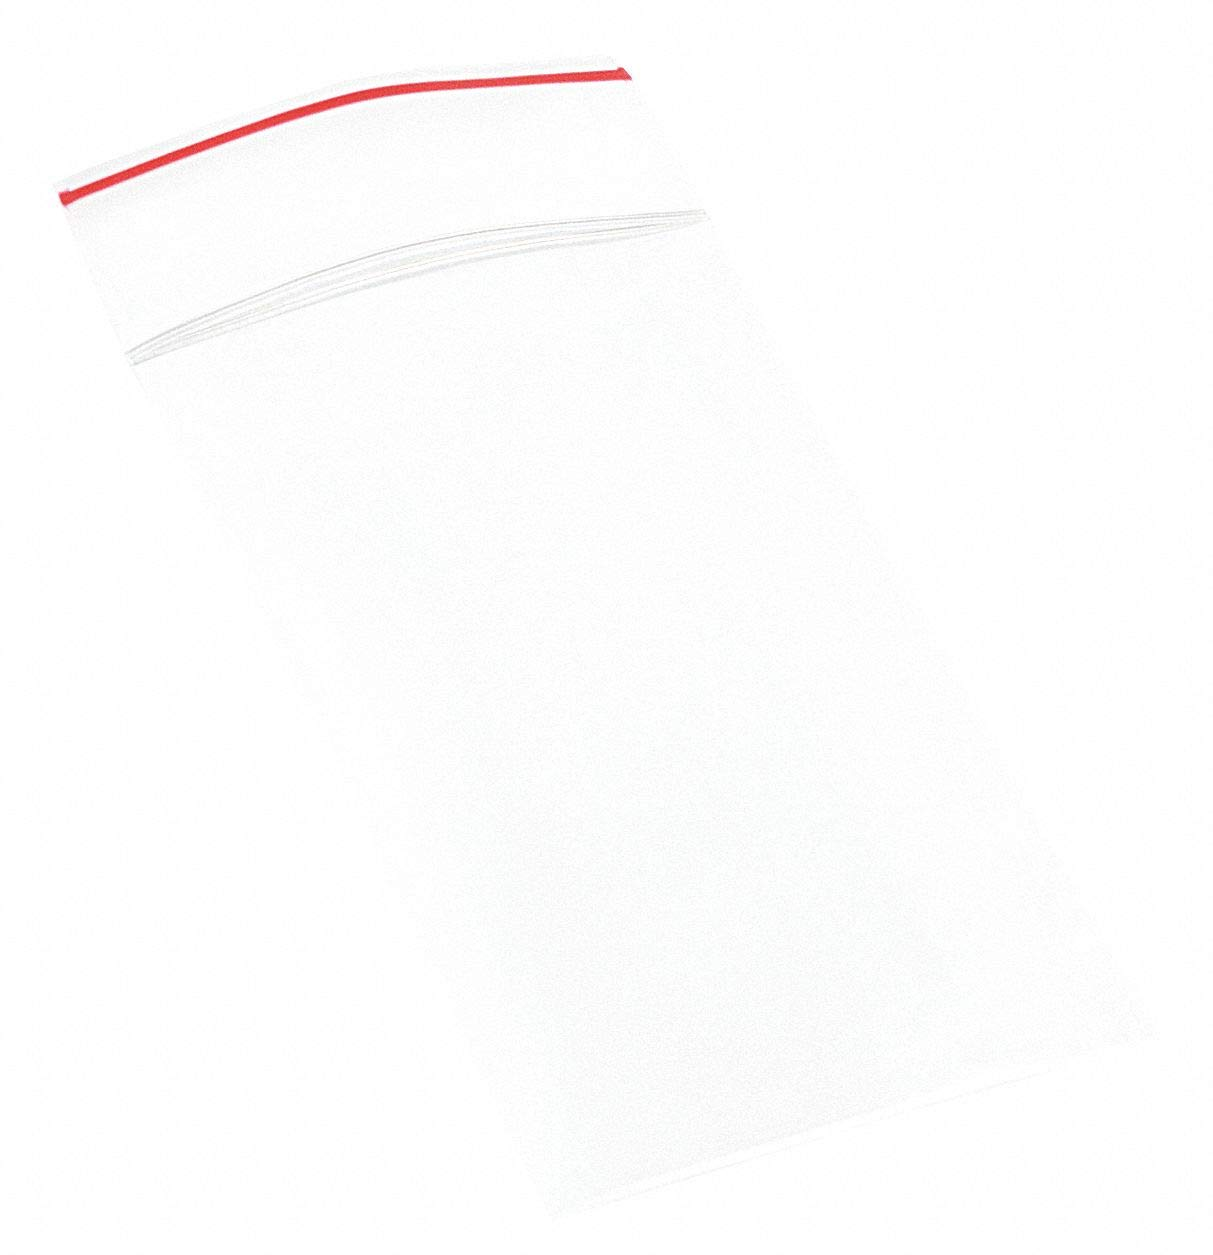 Minigrip Red Line MGRL2P0203 Polyethylene (LDPE/LLDPE Blend) Clear Reclosable Bag, 3'' Length, 2'' Width (Pack of 1000) by Minigrip Red Line